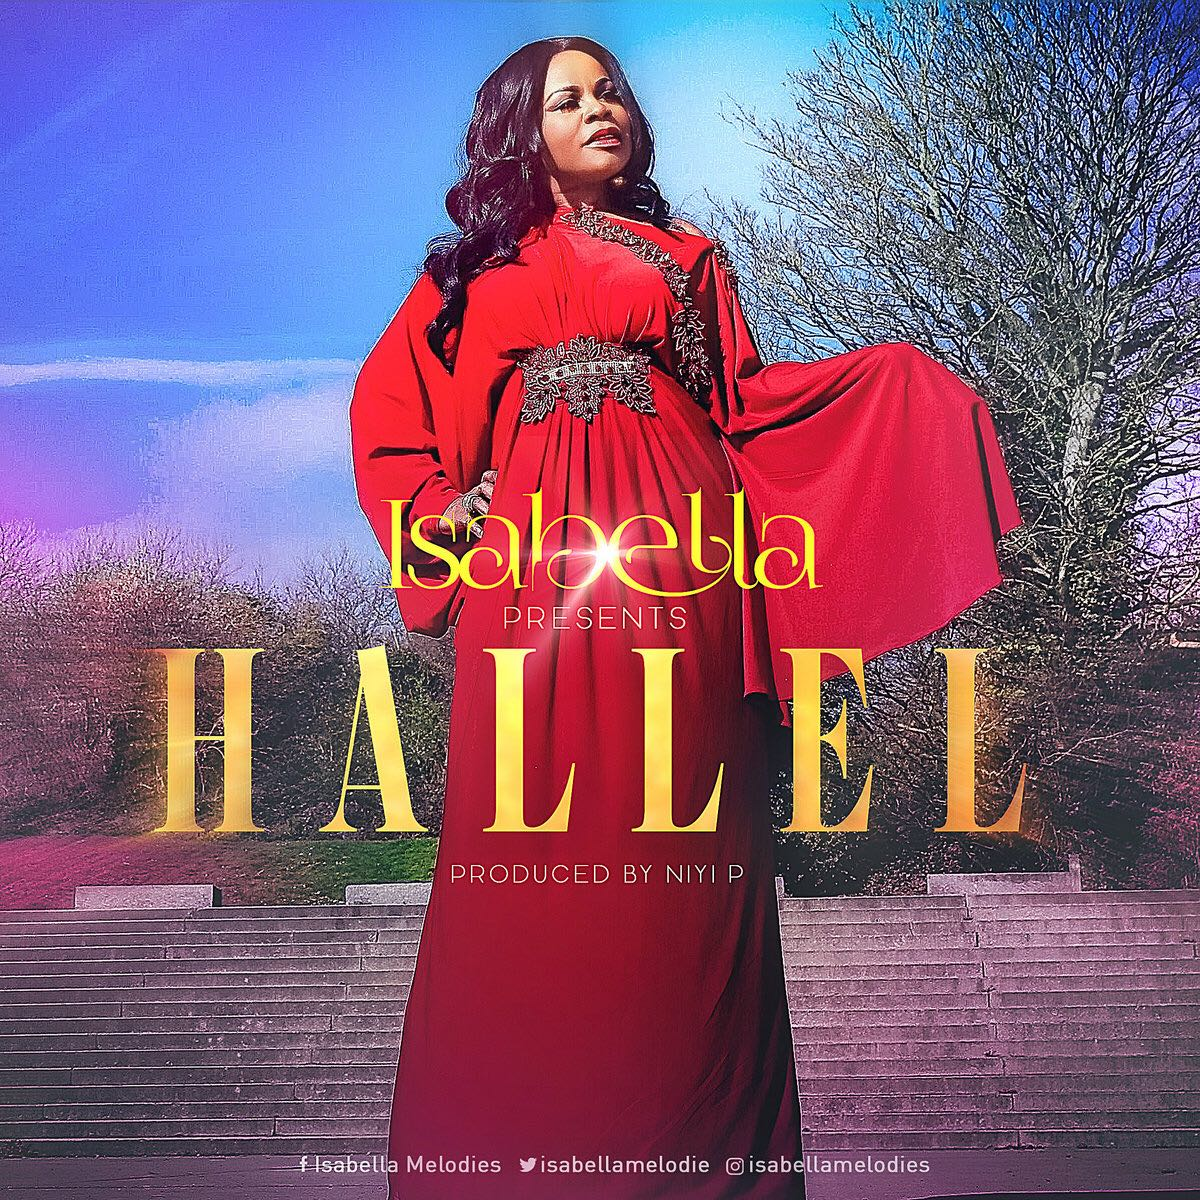 Hallel Isabella - Gospelminds.com